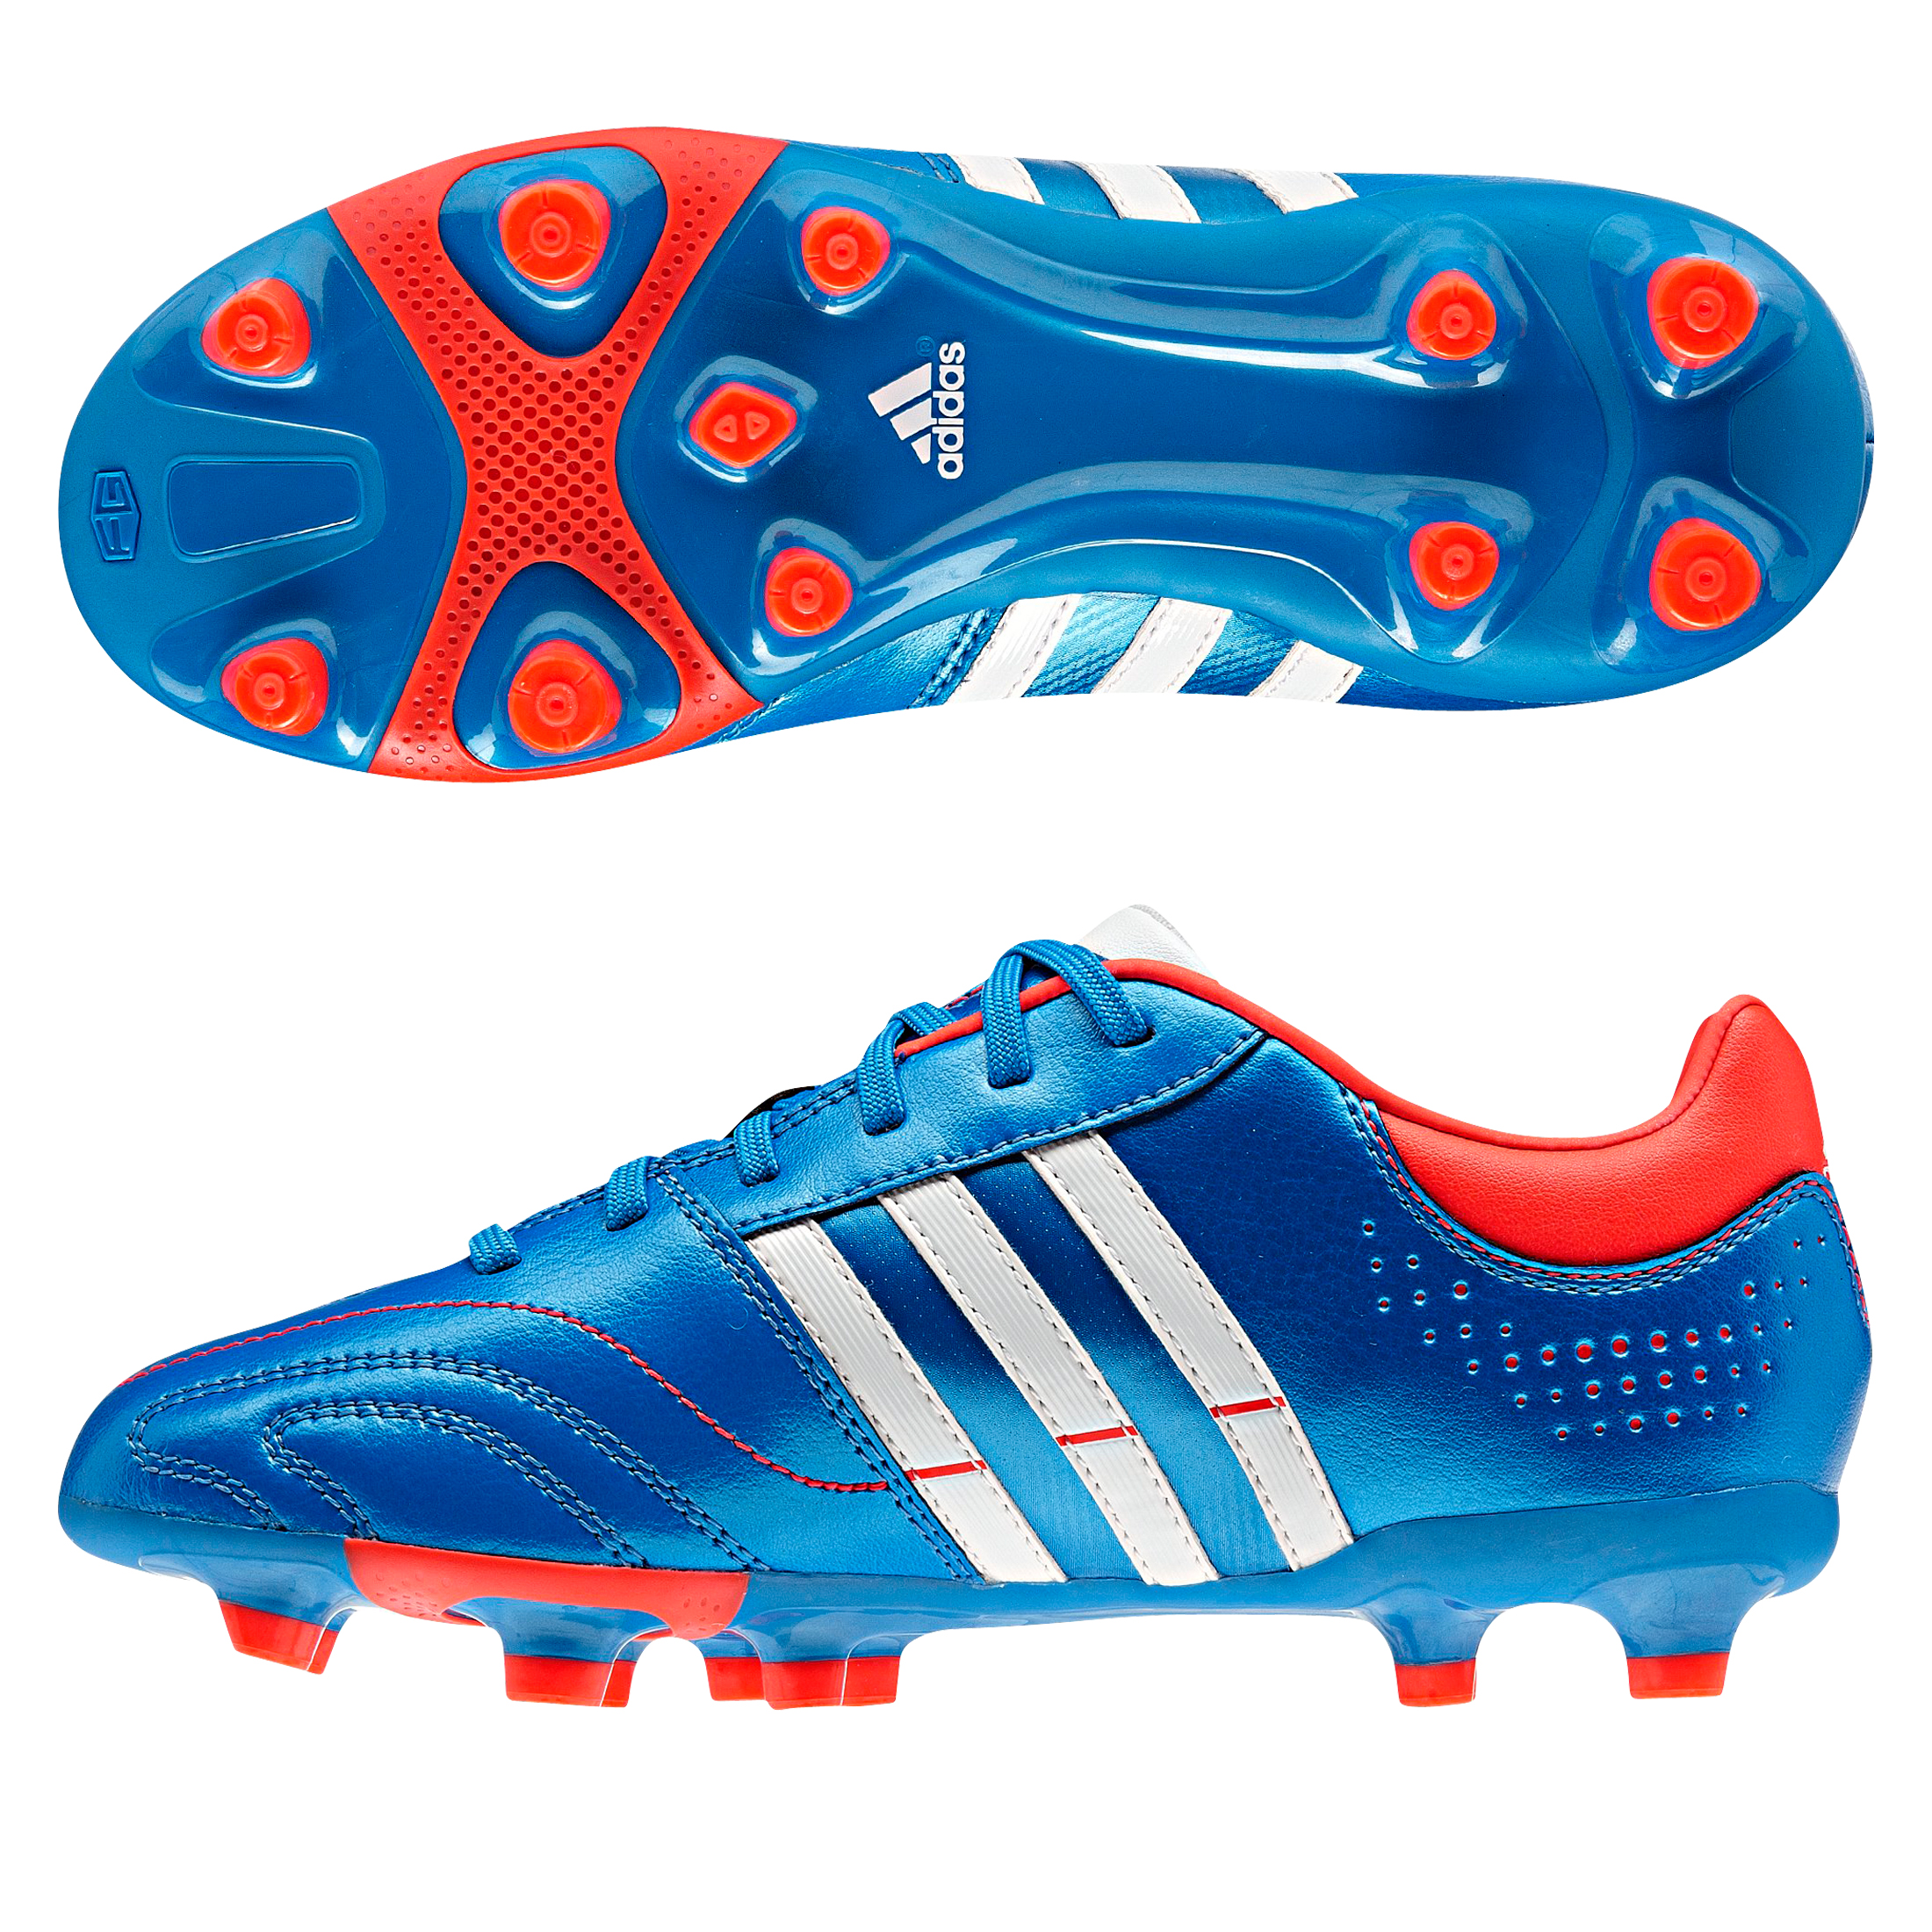 Adidas 11Nova TRX Firm Ground Football Boots - Bright Blue/Running White/Infrared - Kids